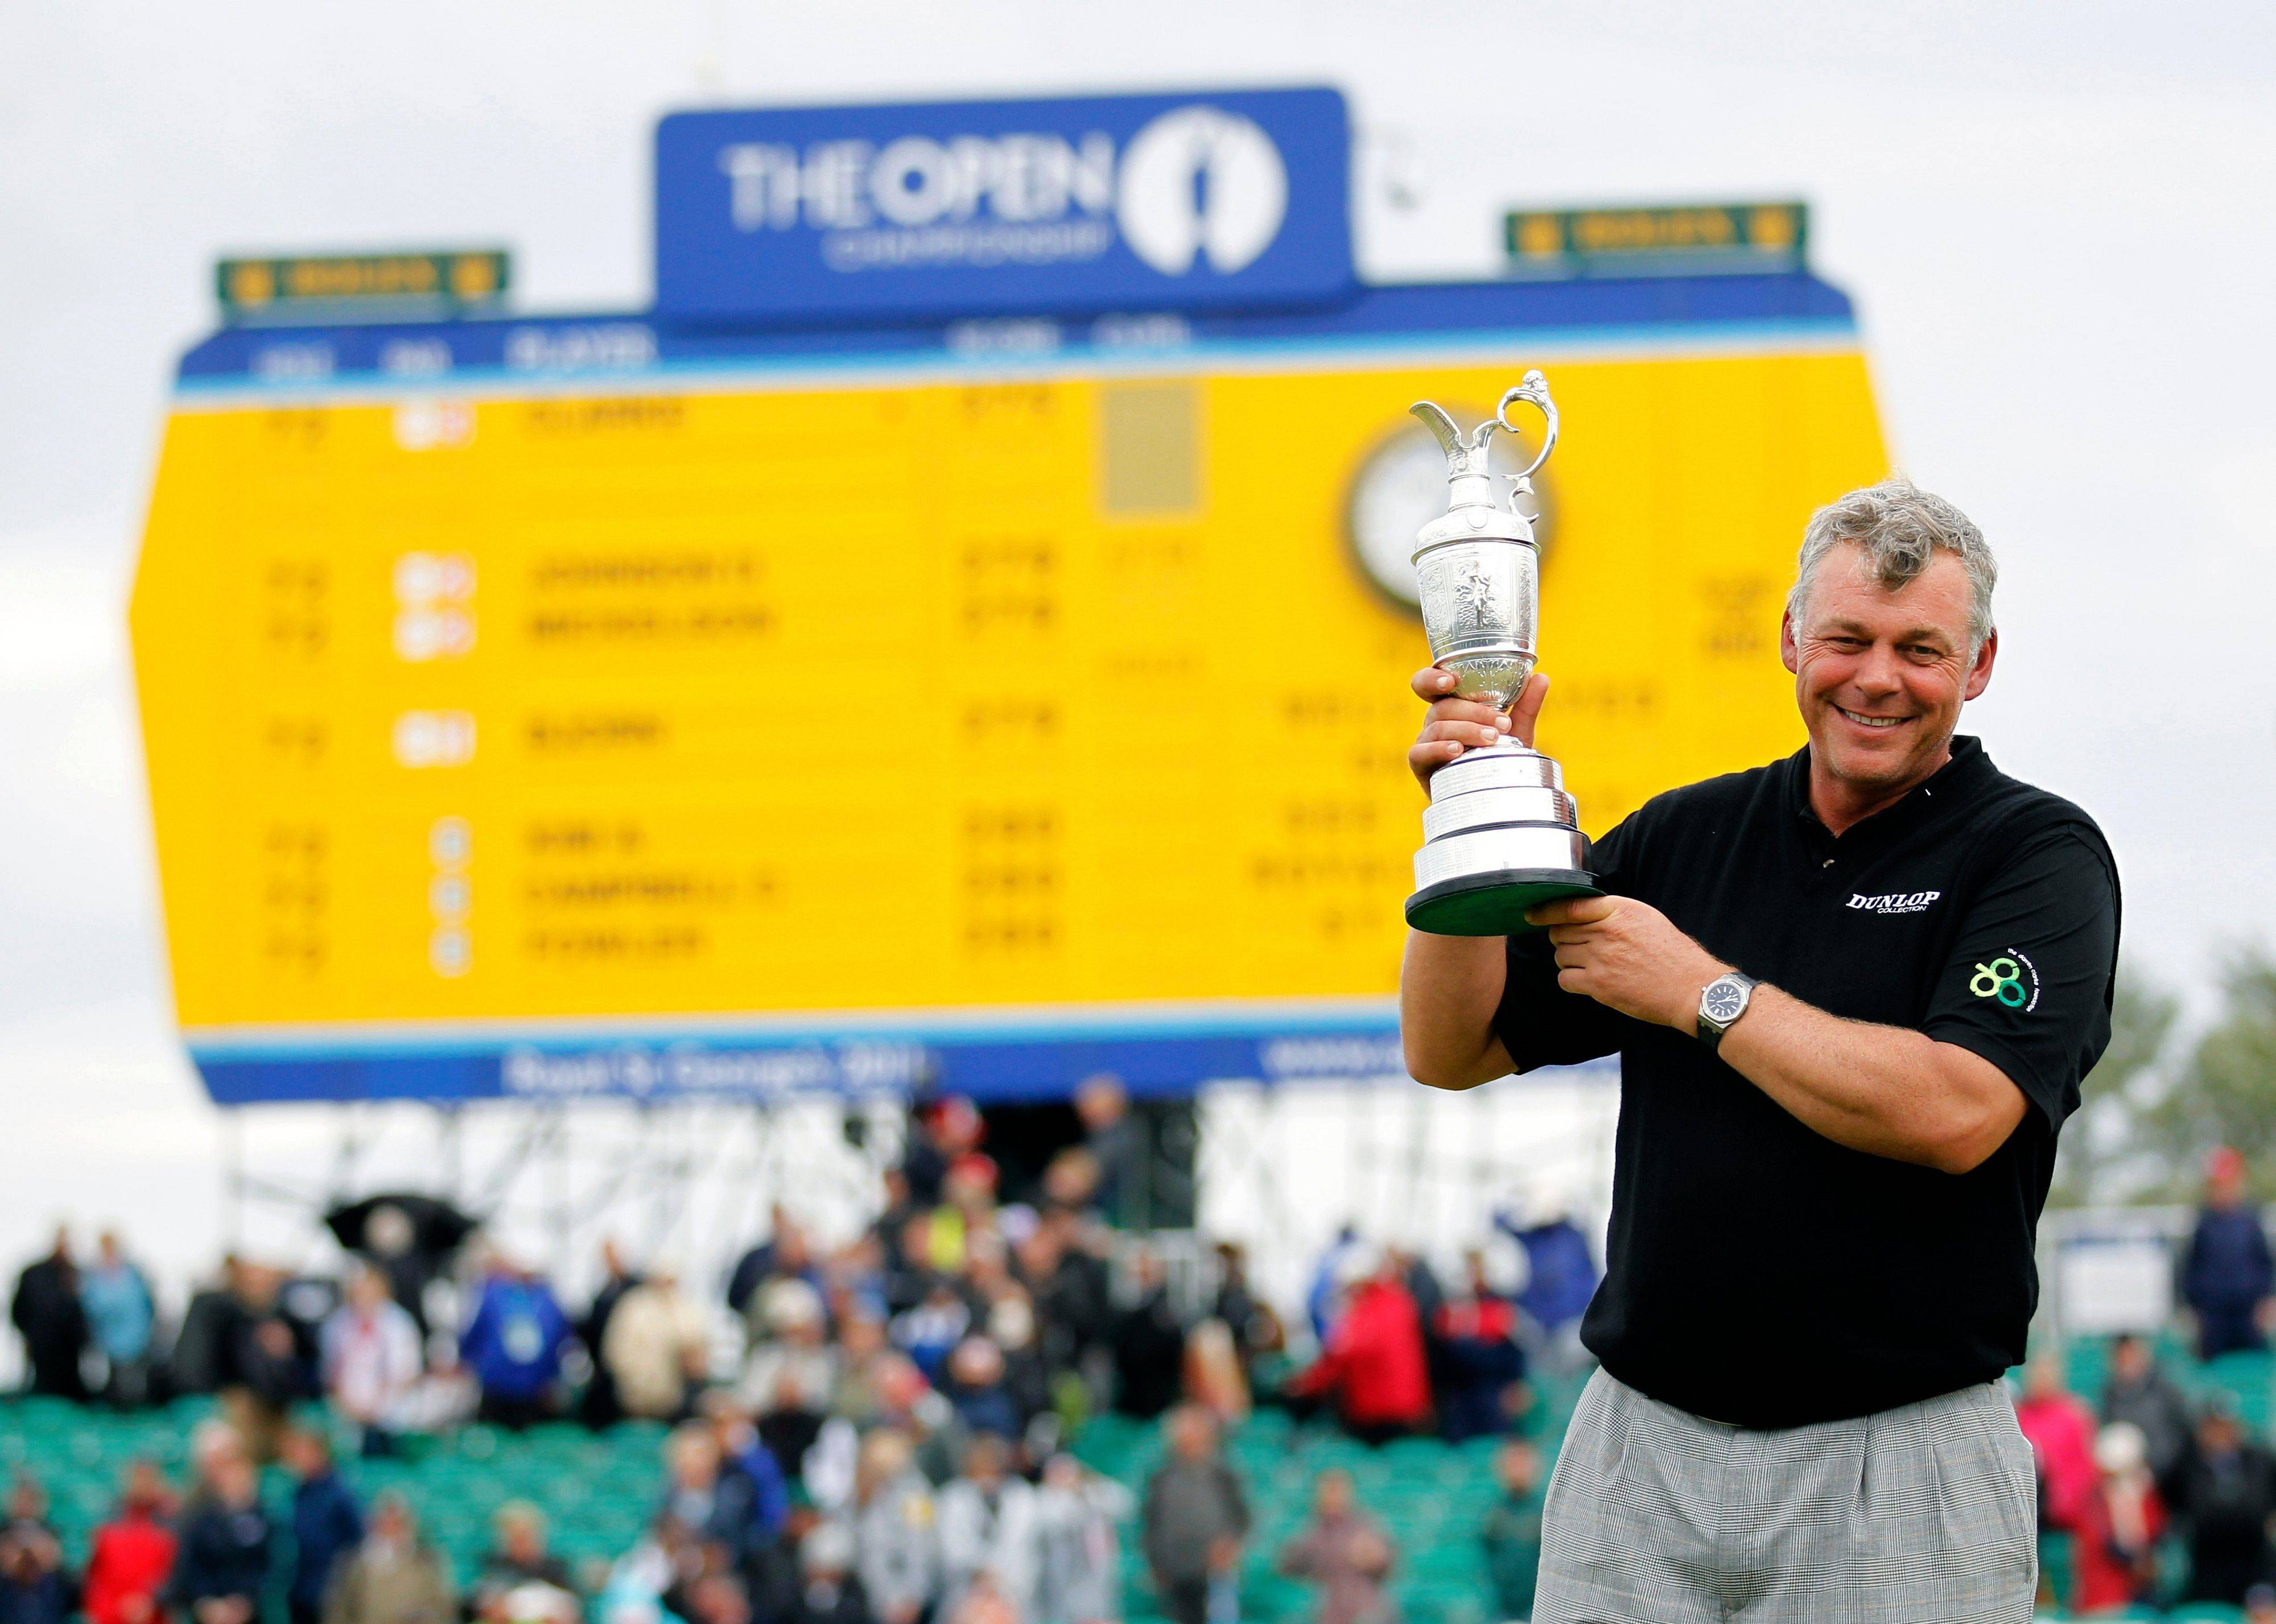 Northern Ireland�s Darren Clarke holds the Claret Jug trophy in front of the scoreboard on the 18th green as he celebrates winning the British Open Golf Championship at Royal St George�s golf course Sandwich, England, Sunday.